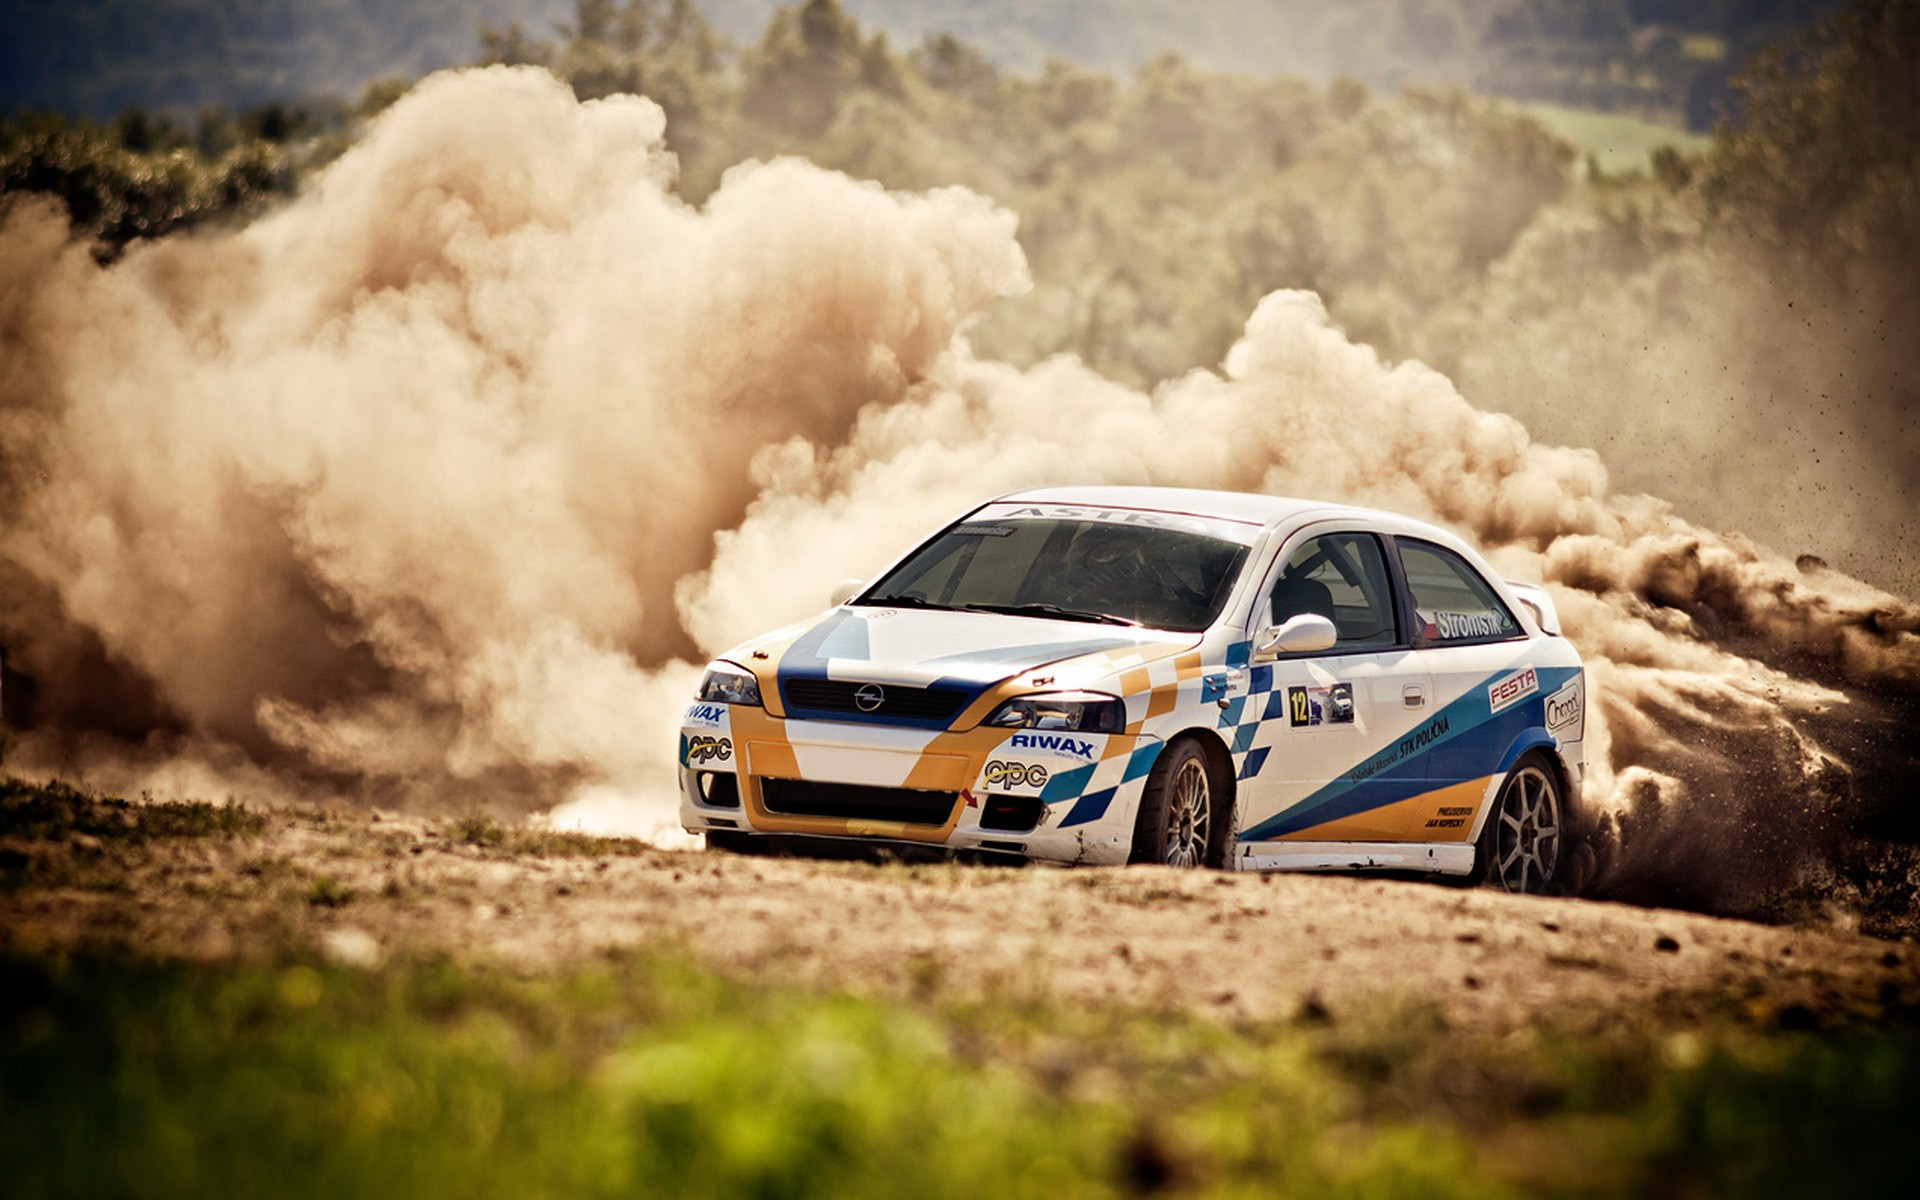 Cars rally dirt racing rally cars racing cars wallpaper background 1920x1200